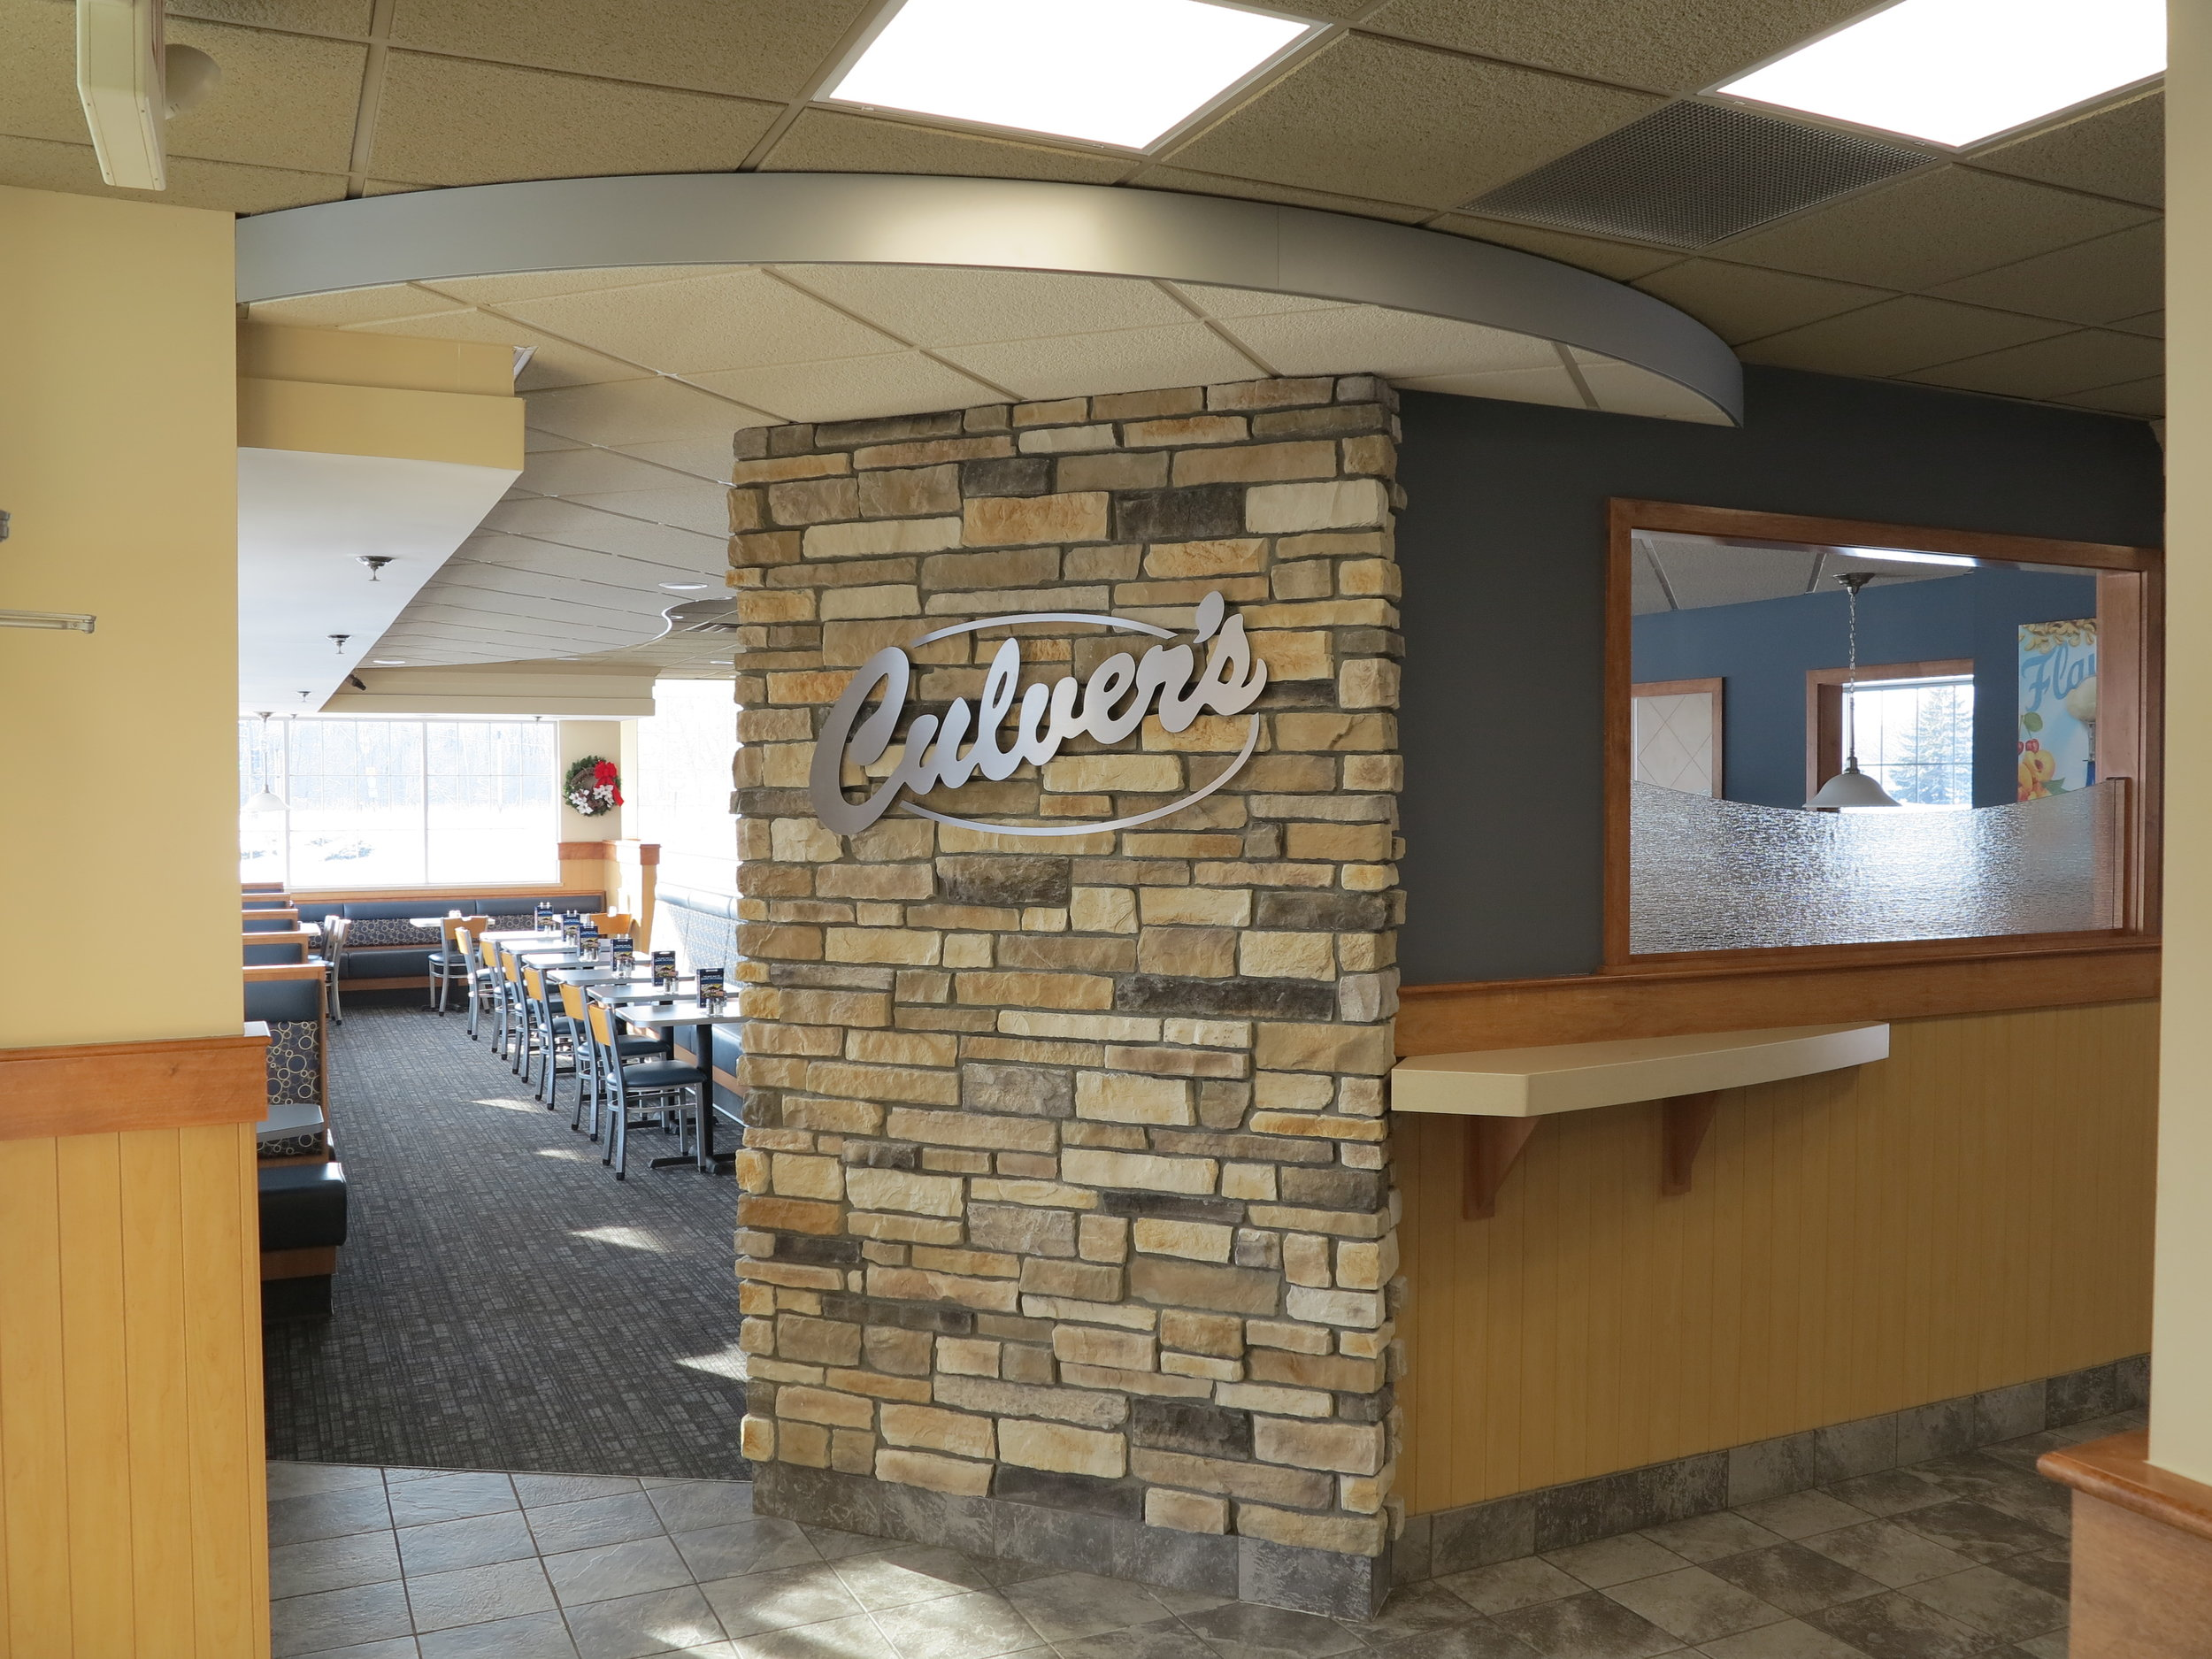 Commercial Painting & Refinishing project for Culver's Restaurant.